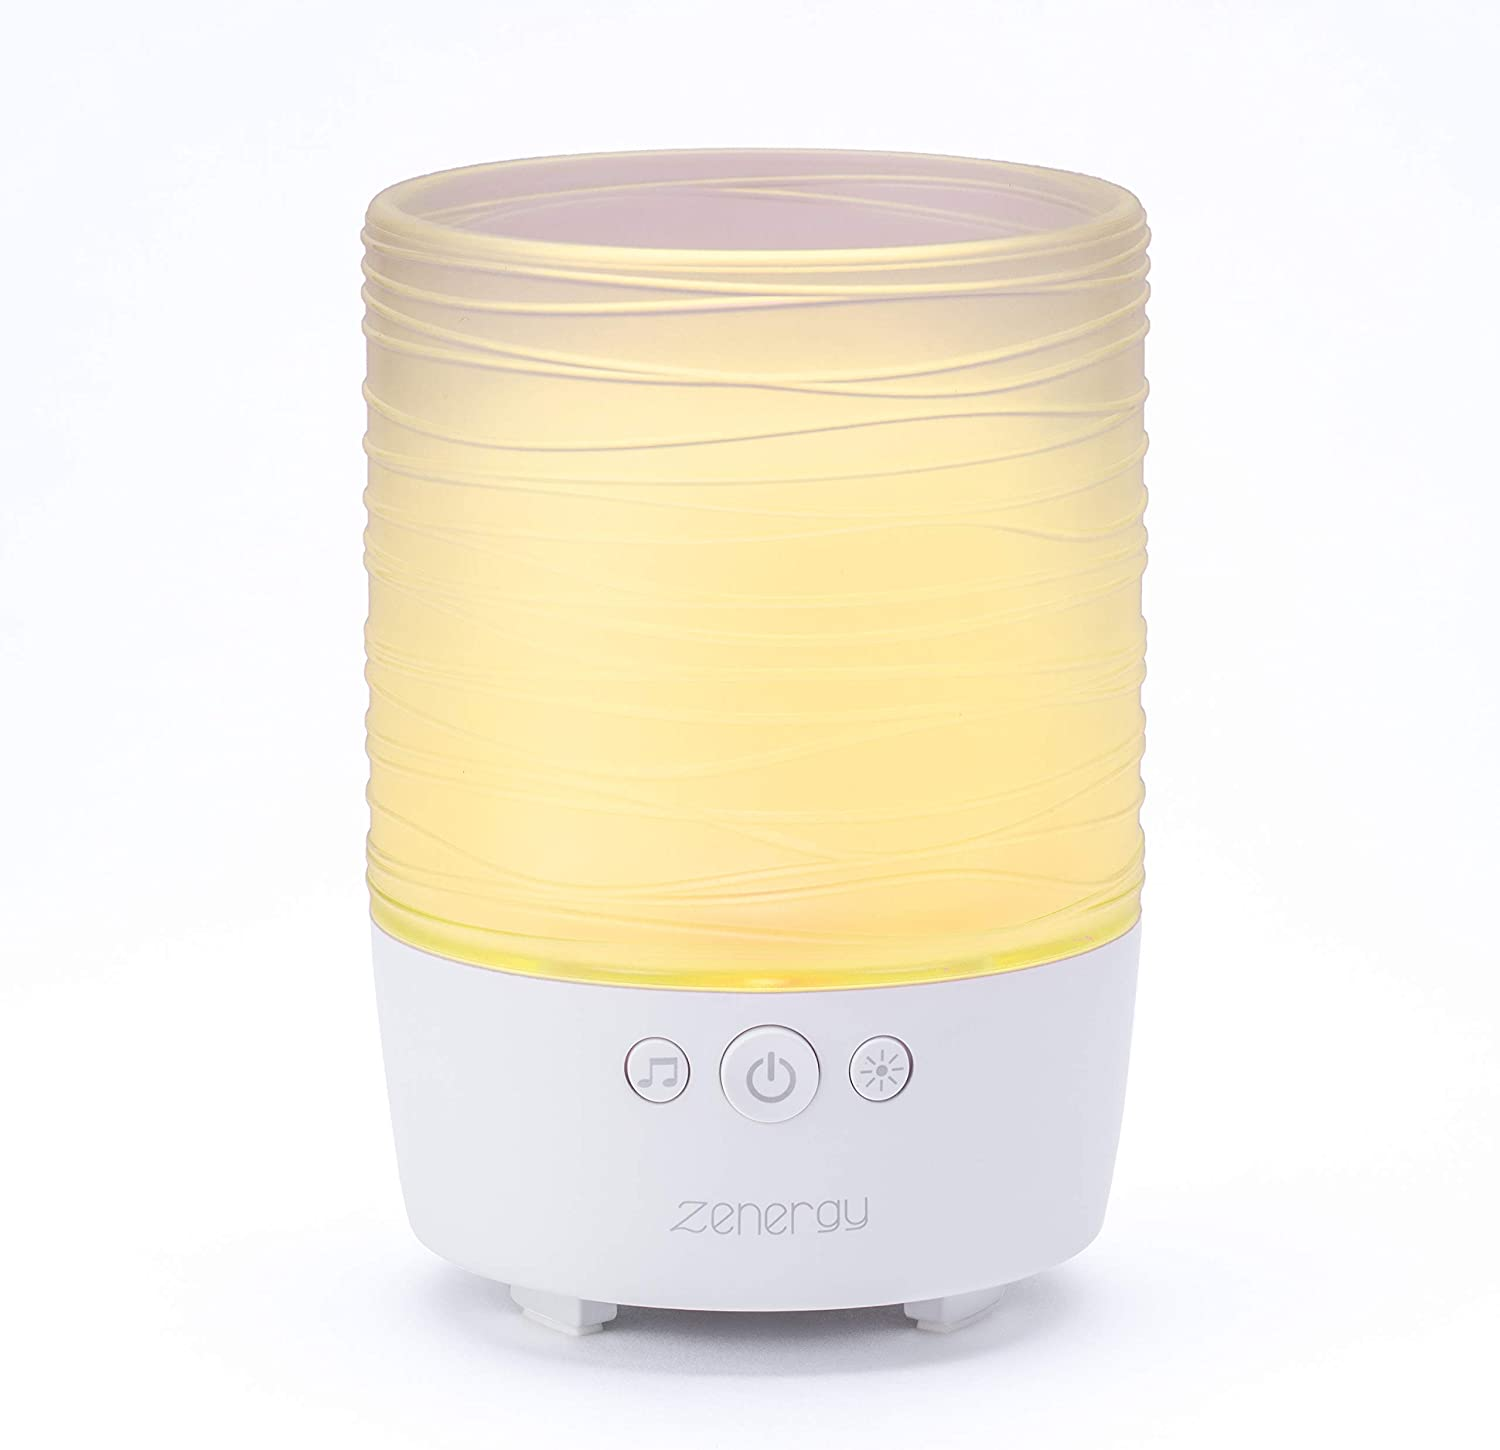 iHome Zenergy Candle Portable Bluetooth Meditative Light and Sound Therapy Candle with Candle Effect, Sound Therapy, and Breathing Guide